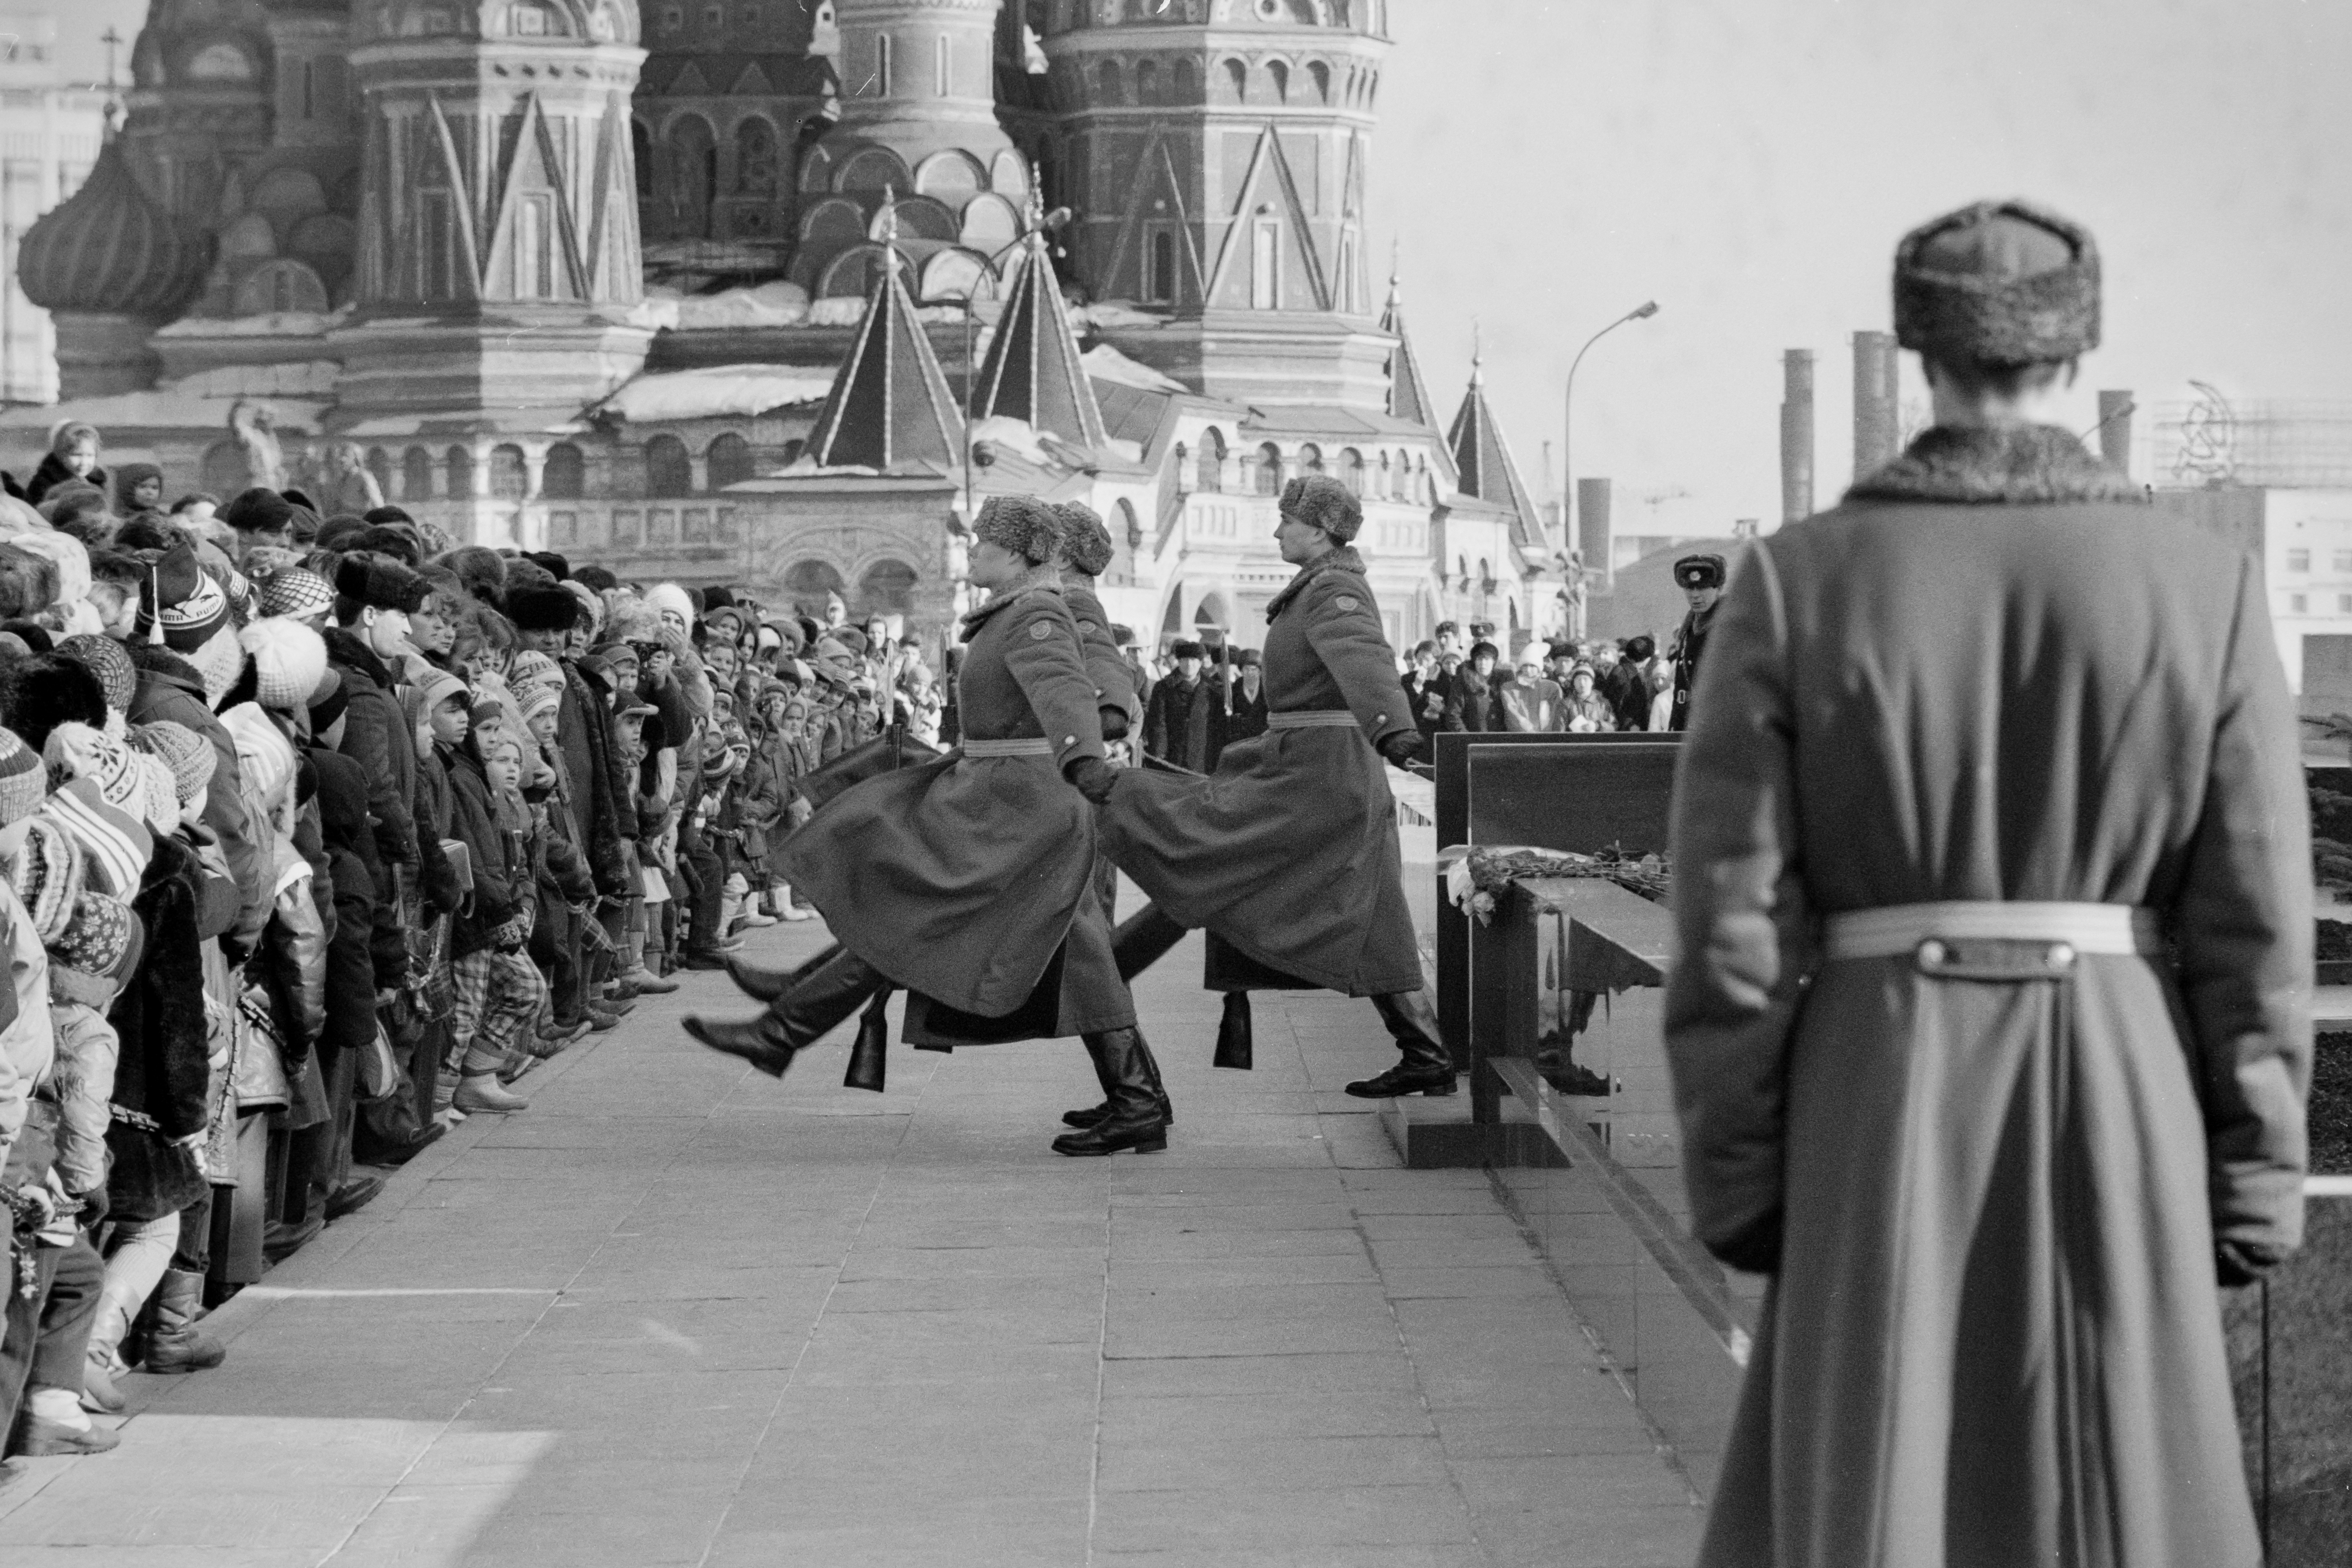 A crowd watches the hourly changing of the honor guard at Lenin's mausoleum in Red Square, Moscow, c.1986. President Boris Yeltsin ended the honor guard in 1993.